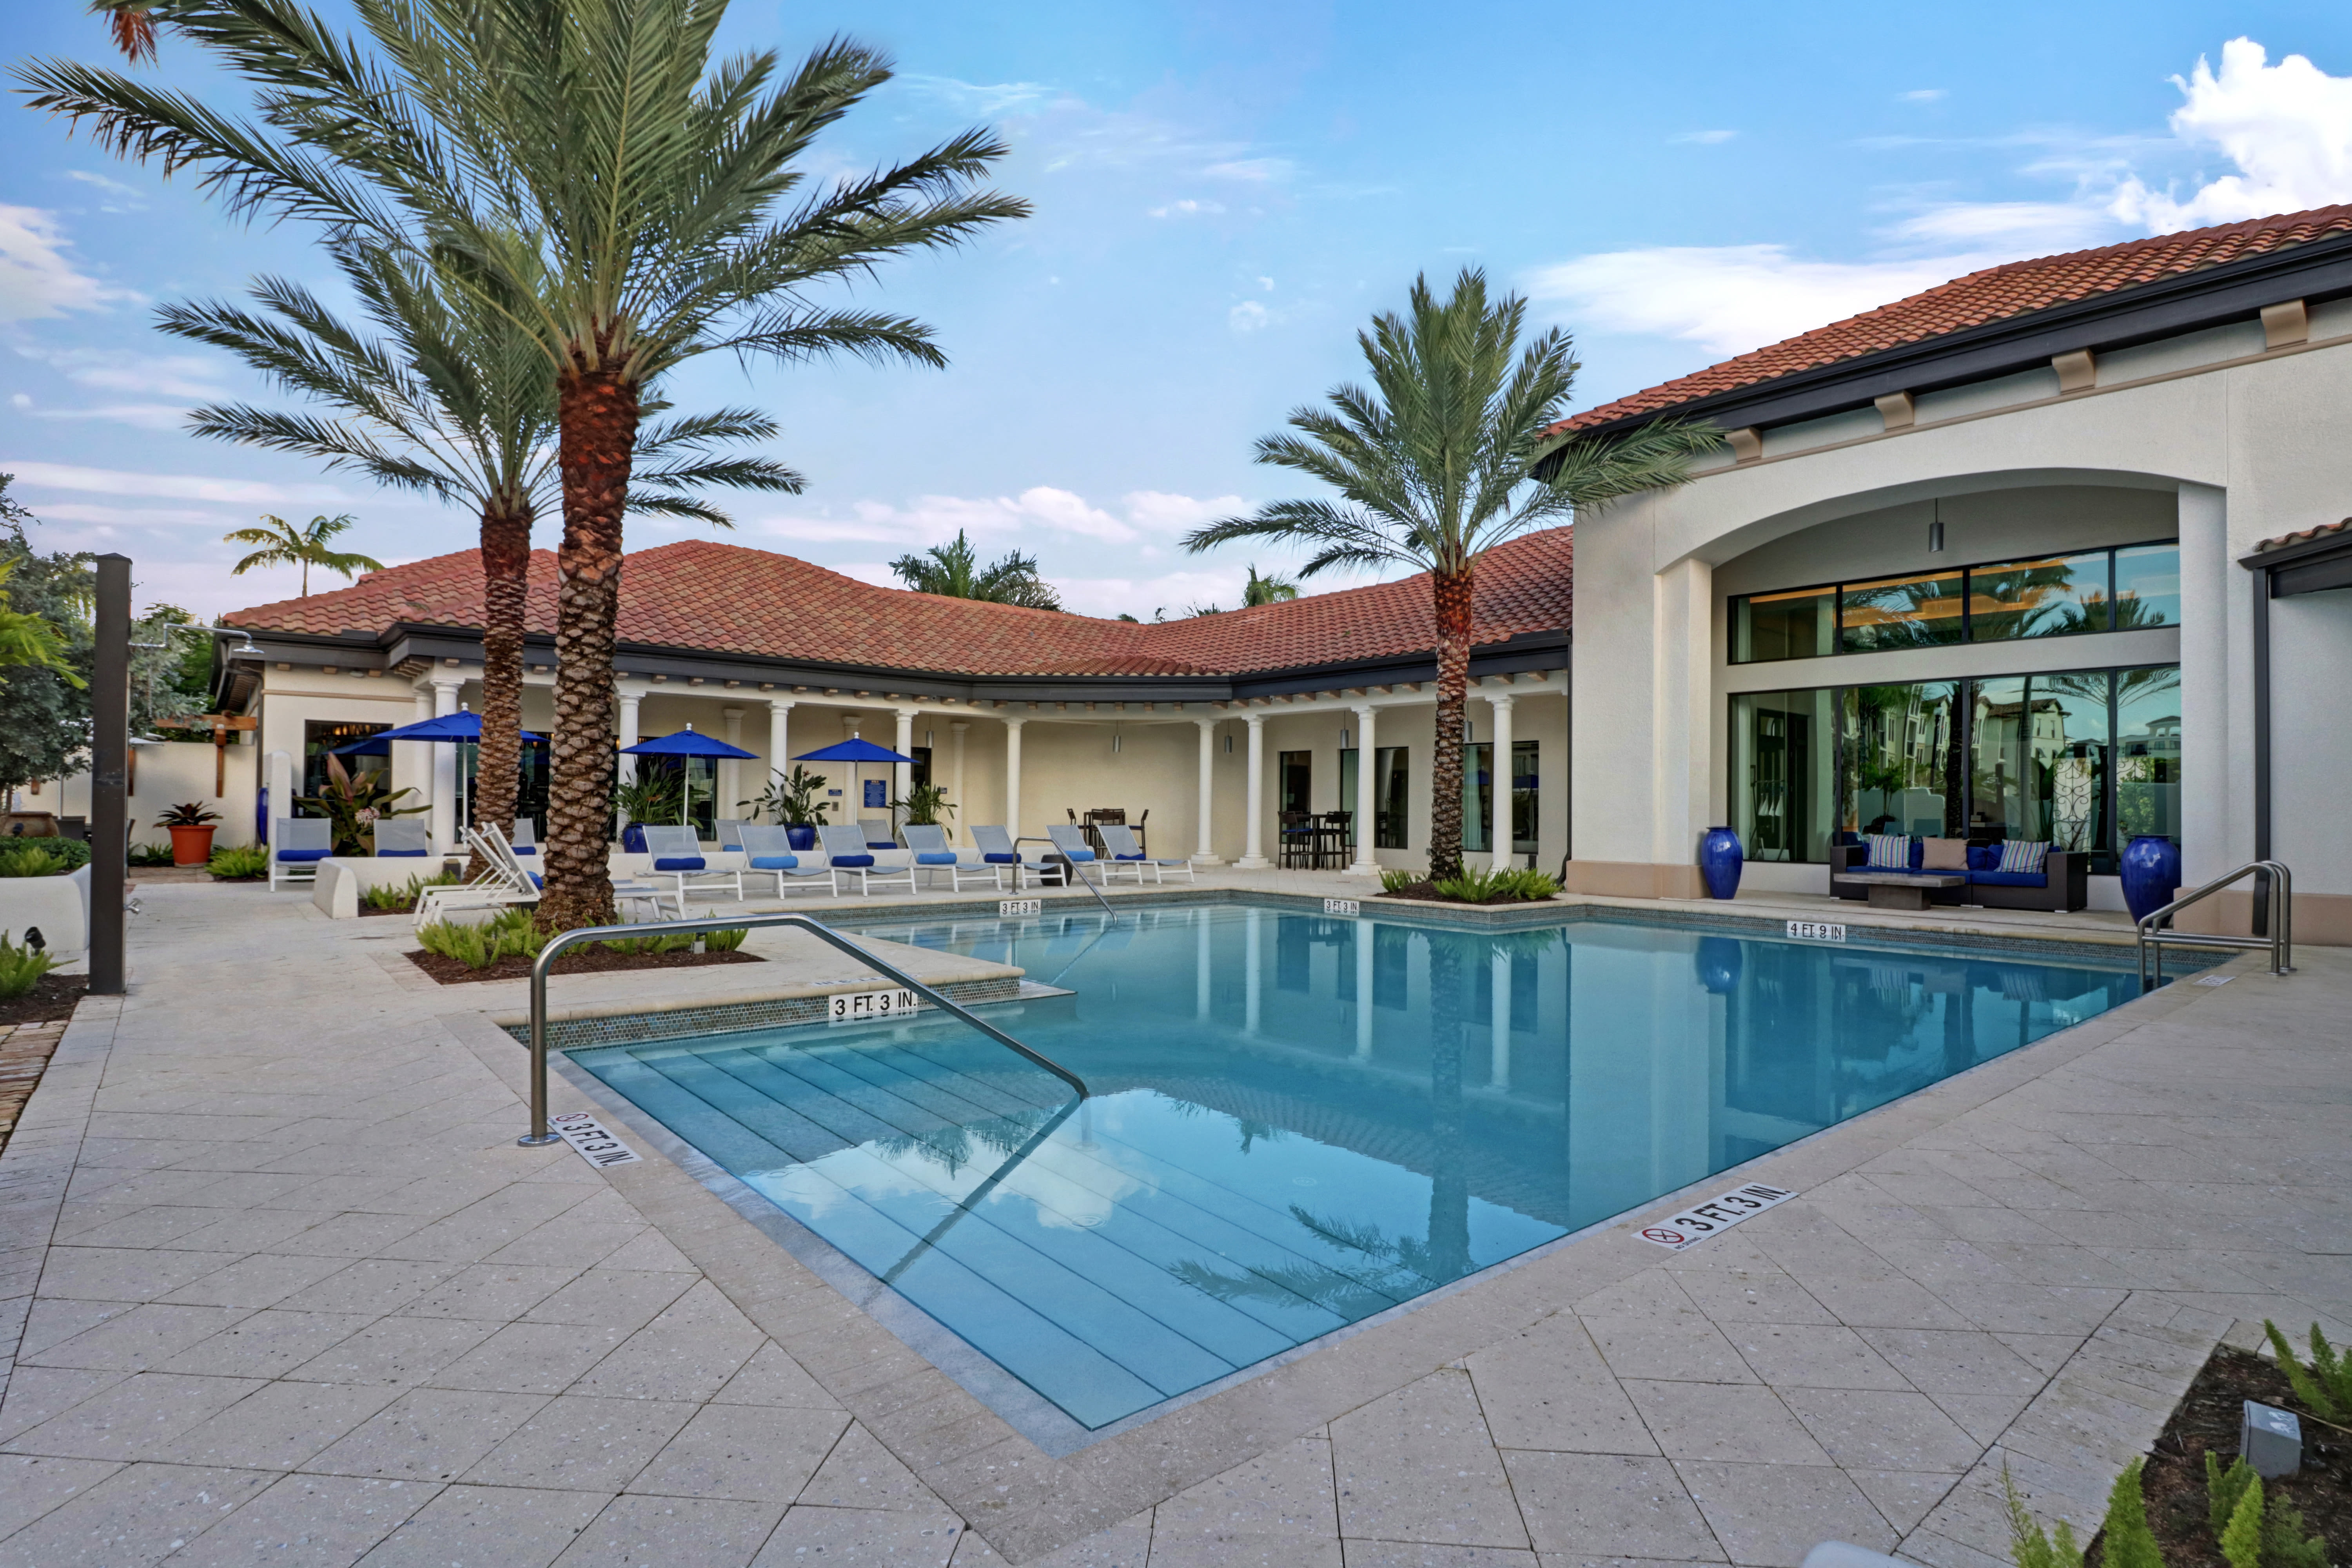 Community clubhouse and swimming pool at Linden Pointe in Pompano Beach, Florida